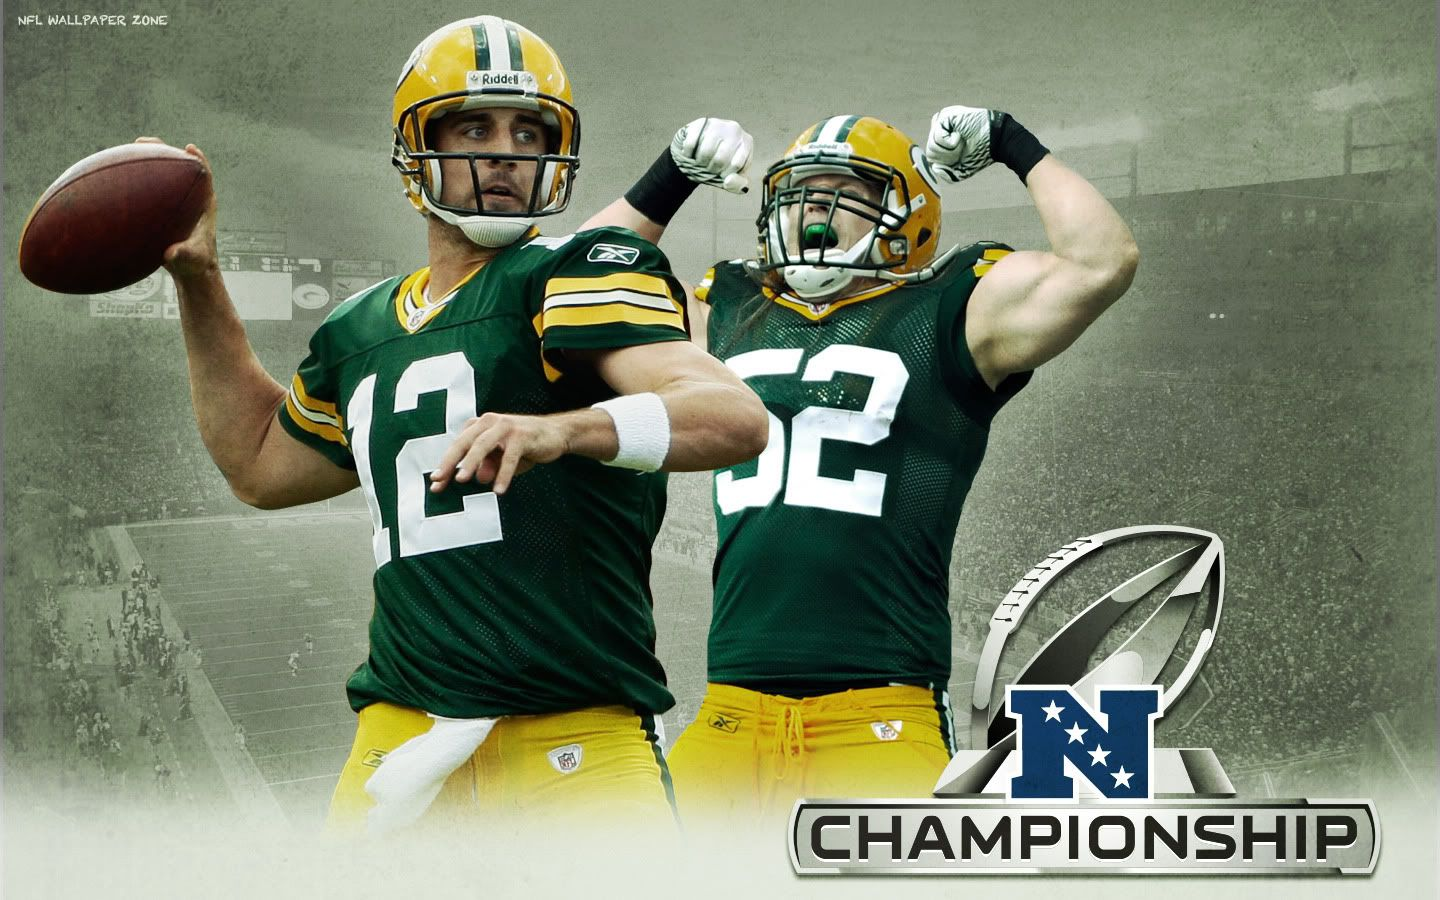 Green Bay Packers Nfc Champions Wallpaper Green Bay Packers Wallpaper Green Bay Packers Green Bay